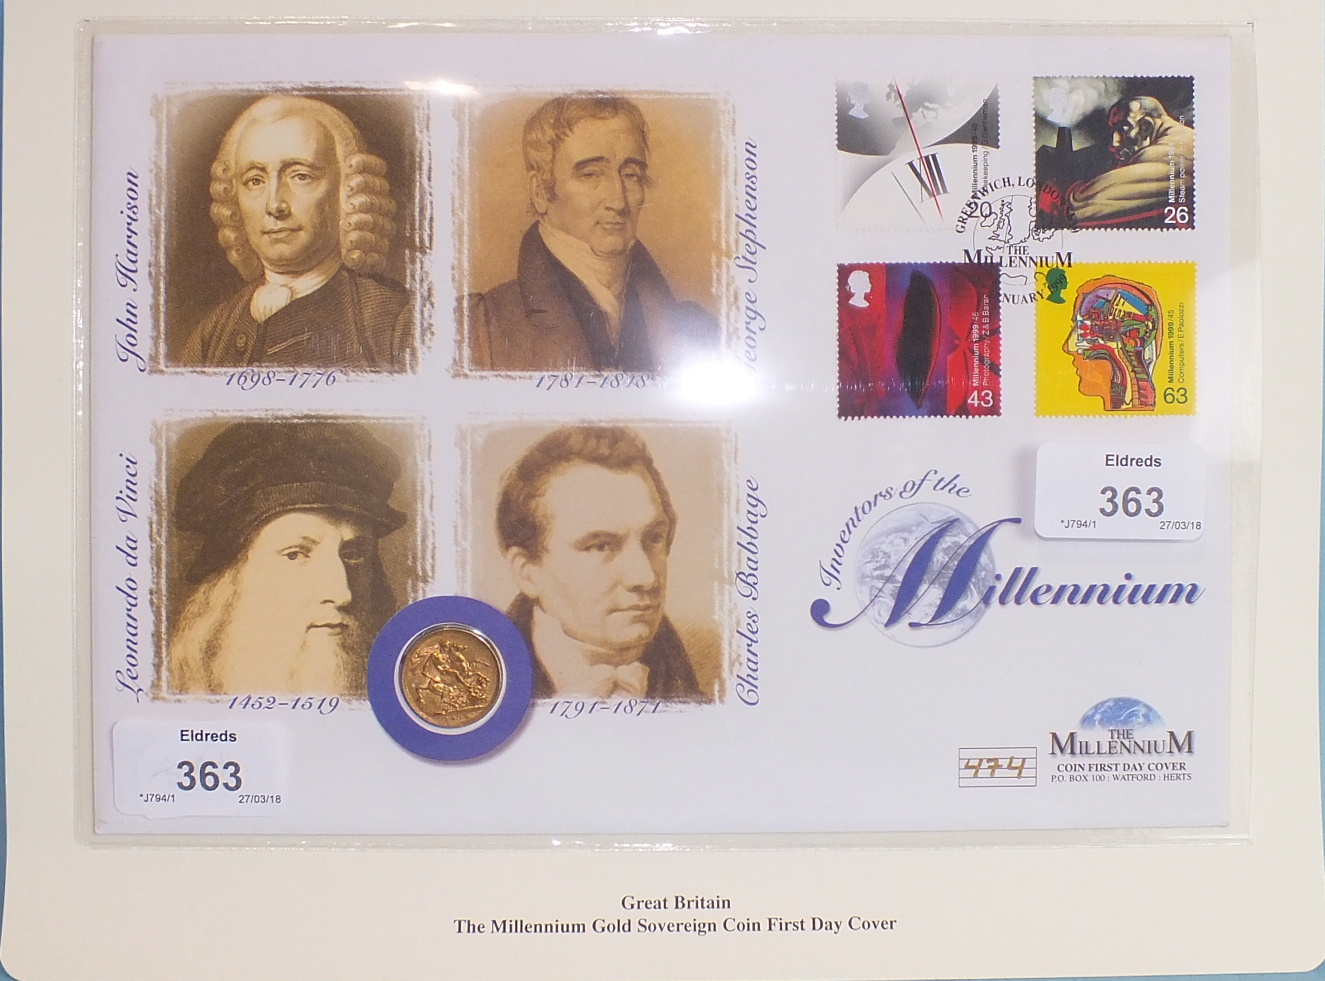 Lot 363 - A Westminster Mint 'The Millennium Gold Sovereign Coin First Day Cover', containing a Queen Victoria